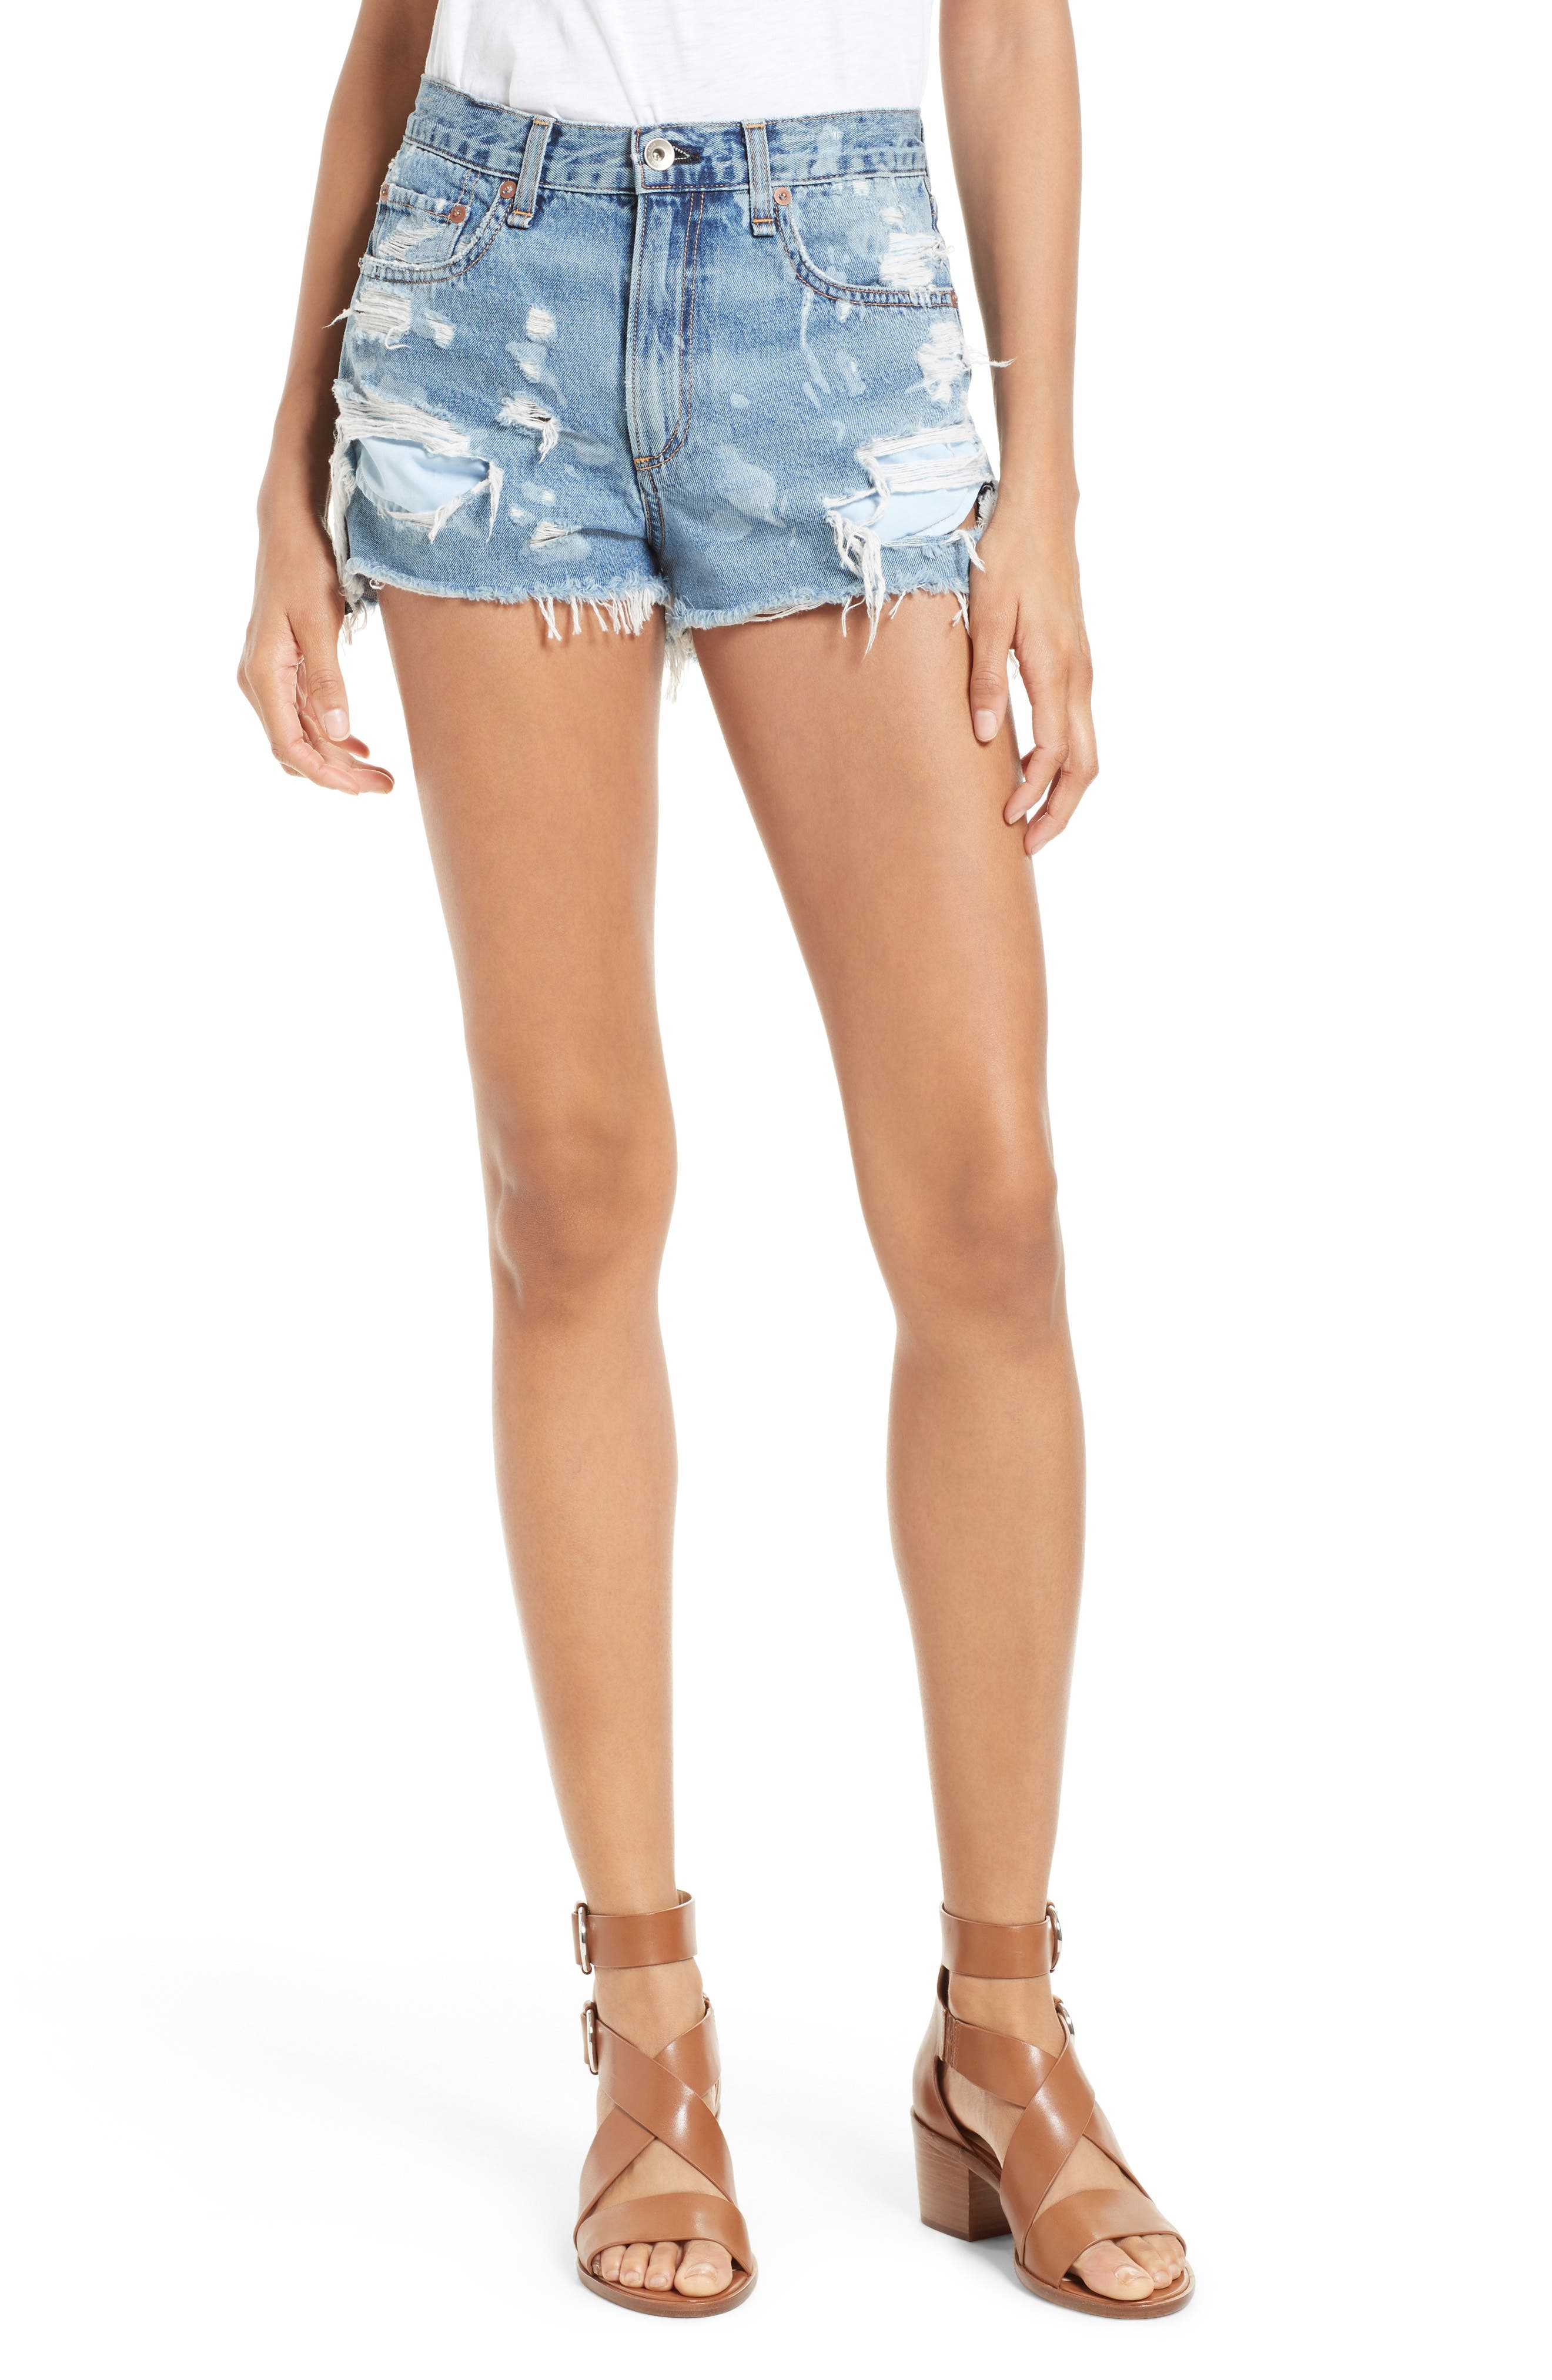 Justine High Waist Cutoff Denim Shorts,                         Main,                         color, 422